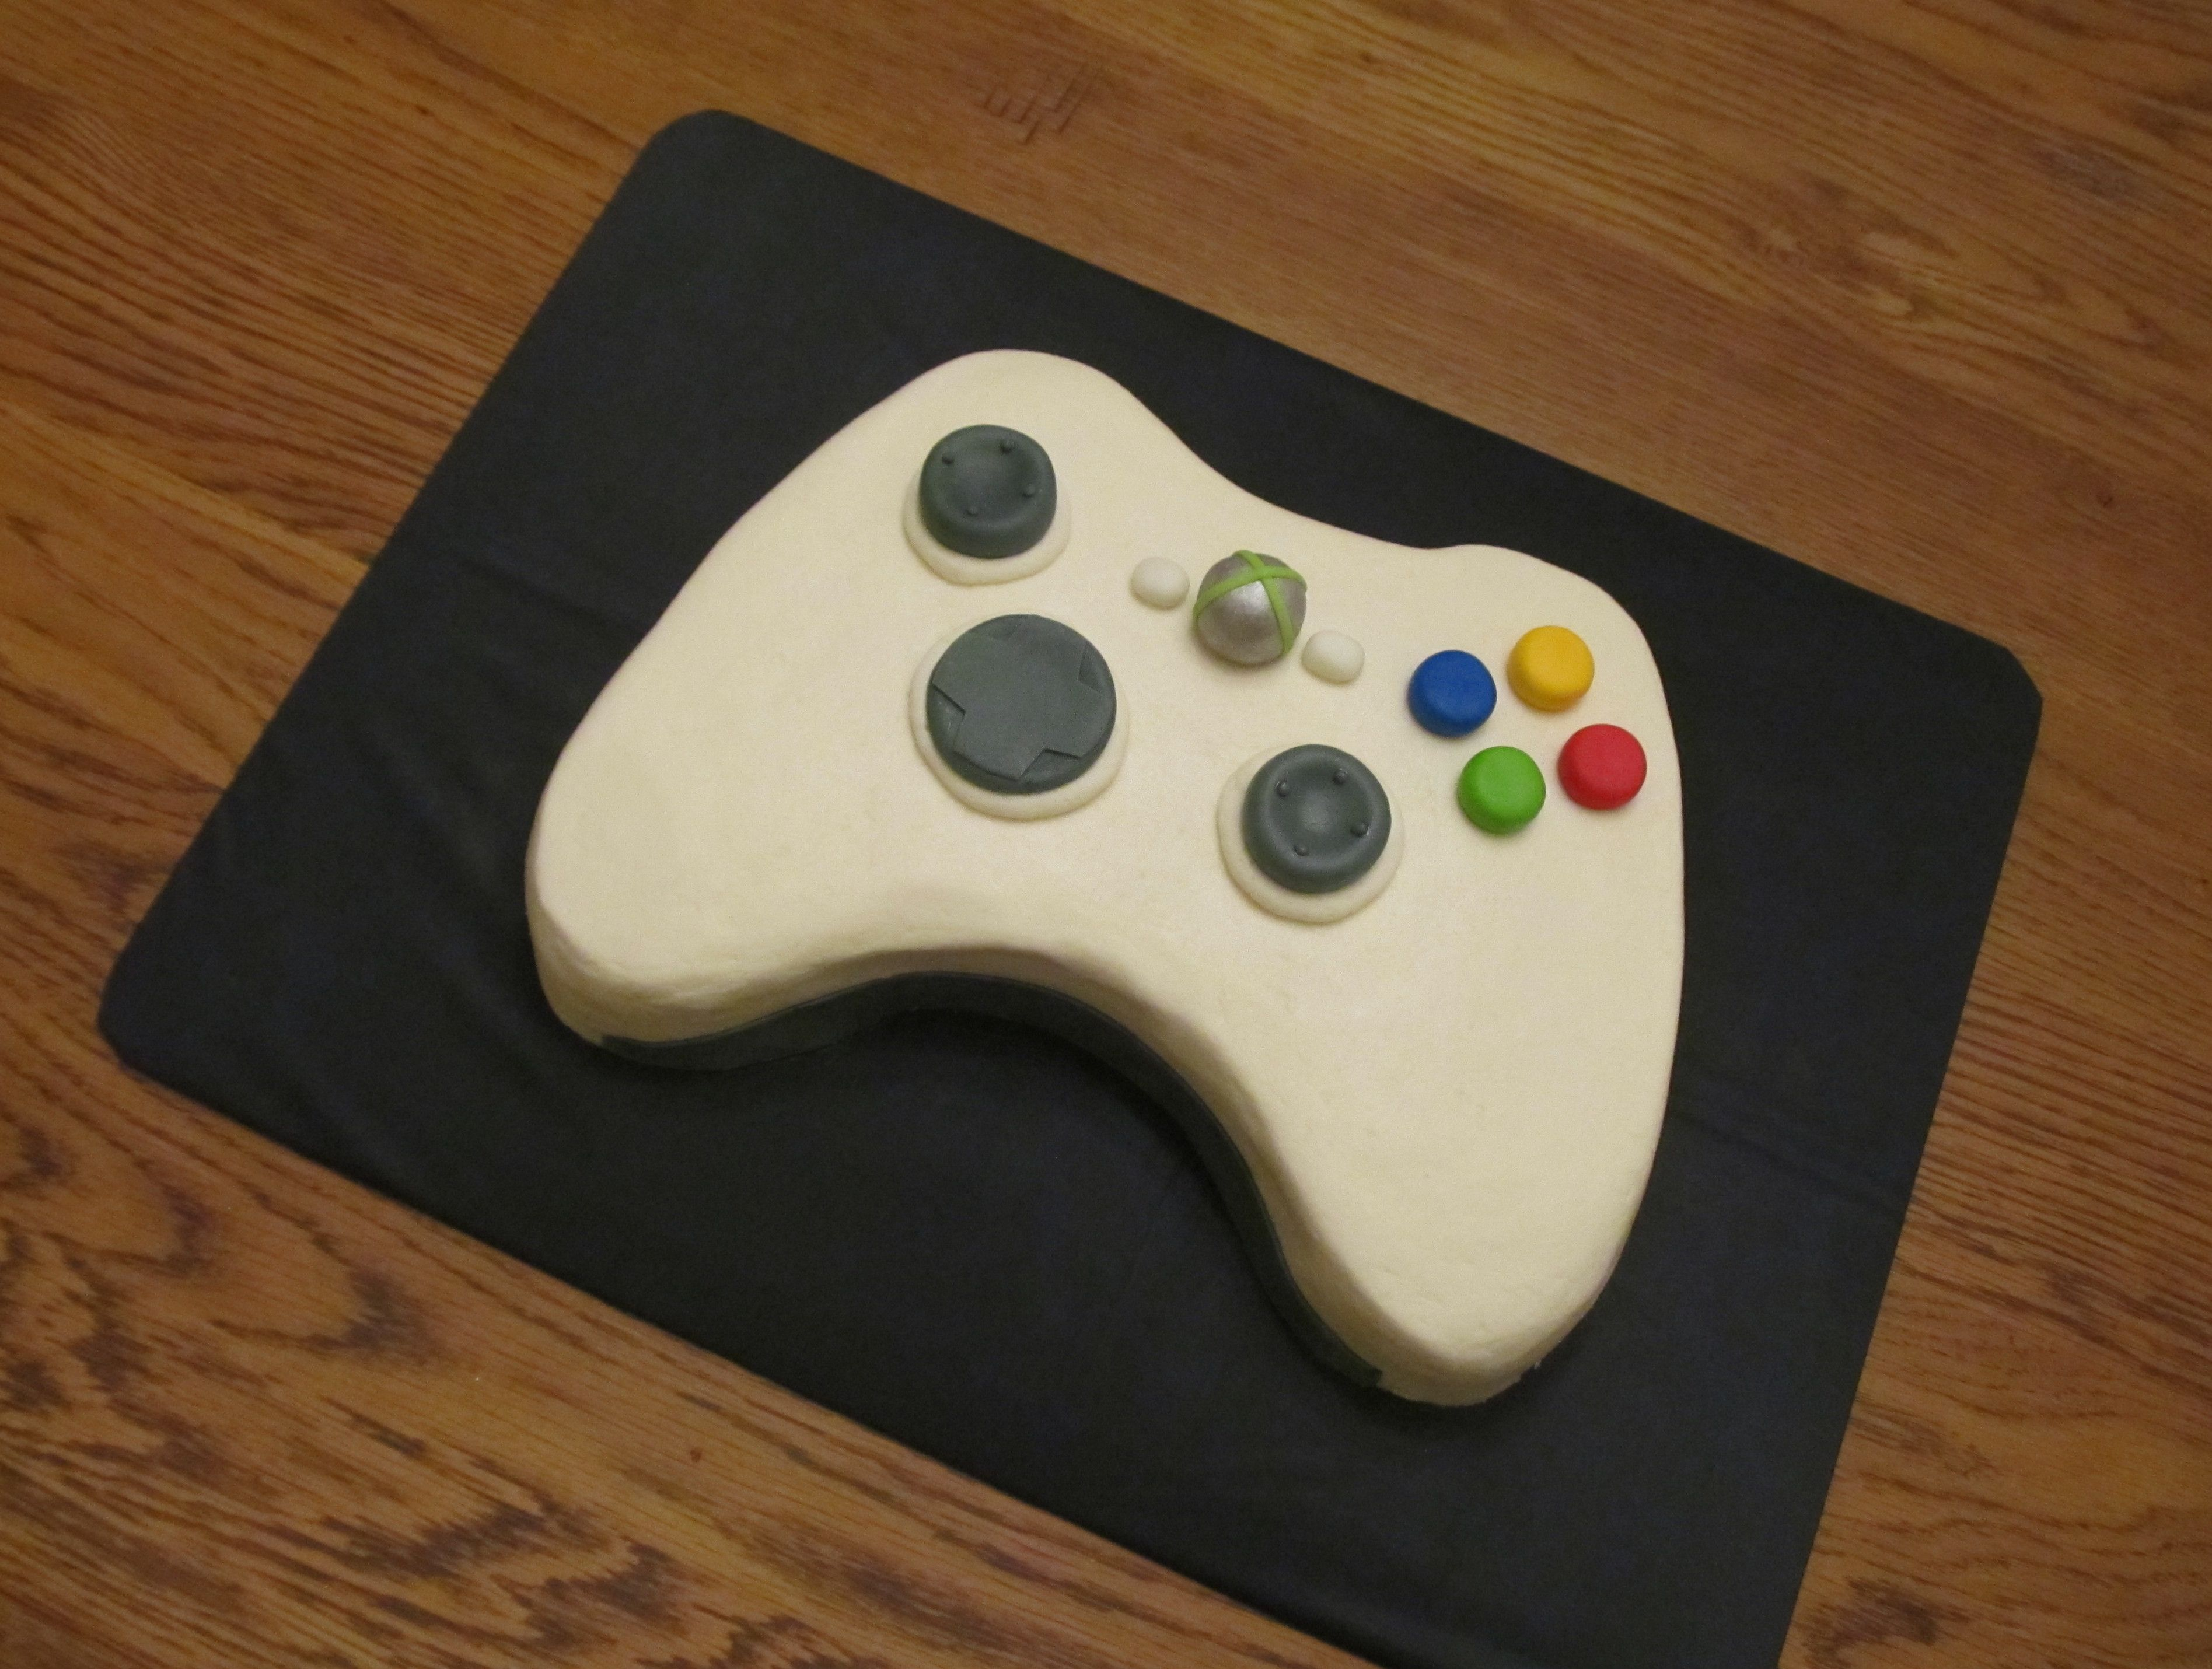 Xbox controller cake 9 x13 cake that i cut into shape of an